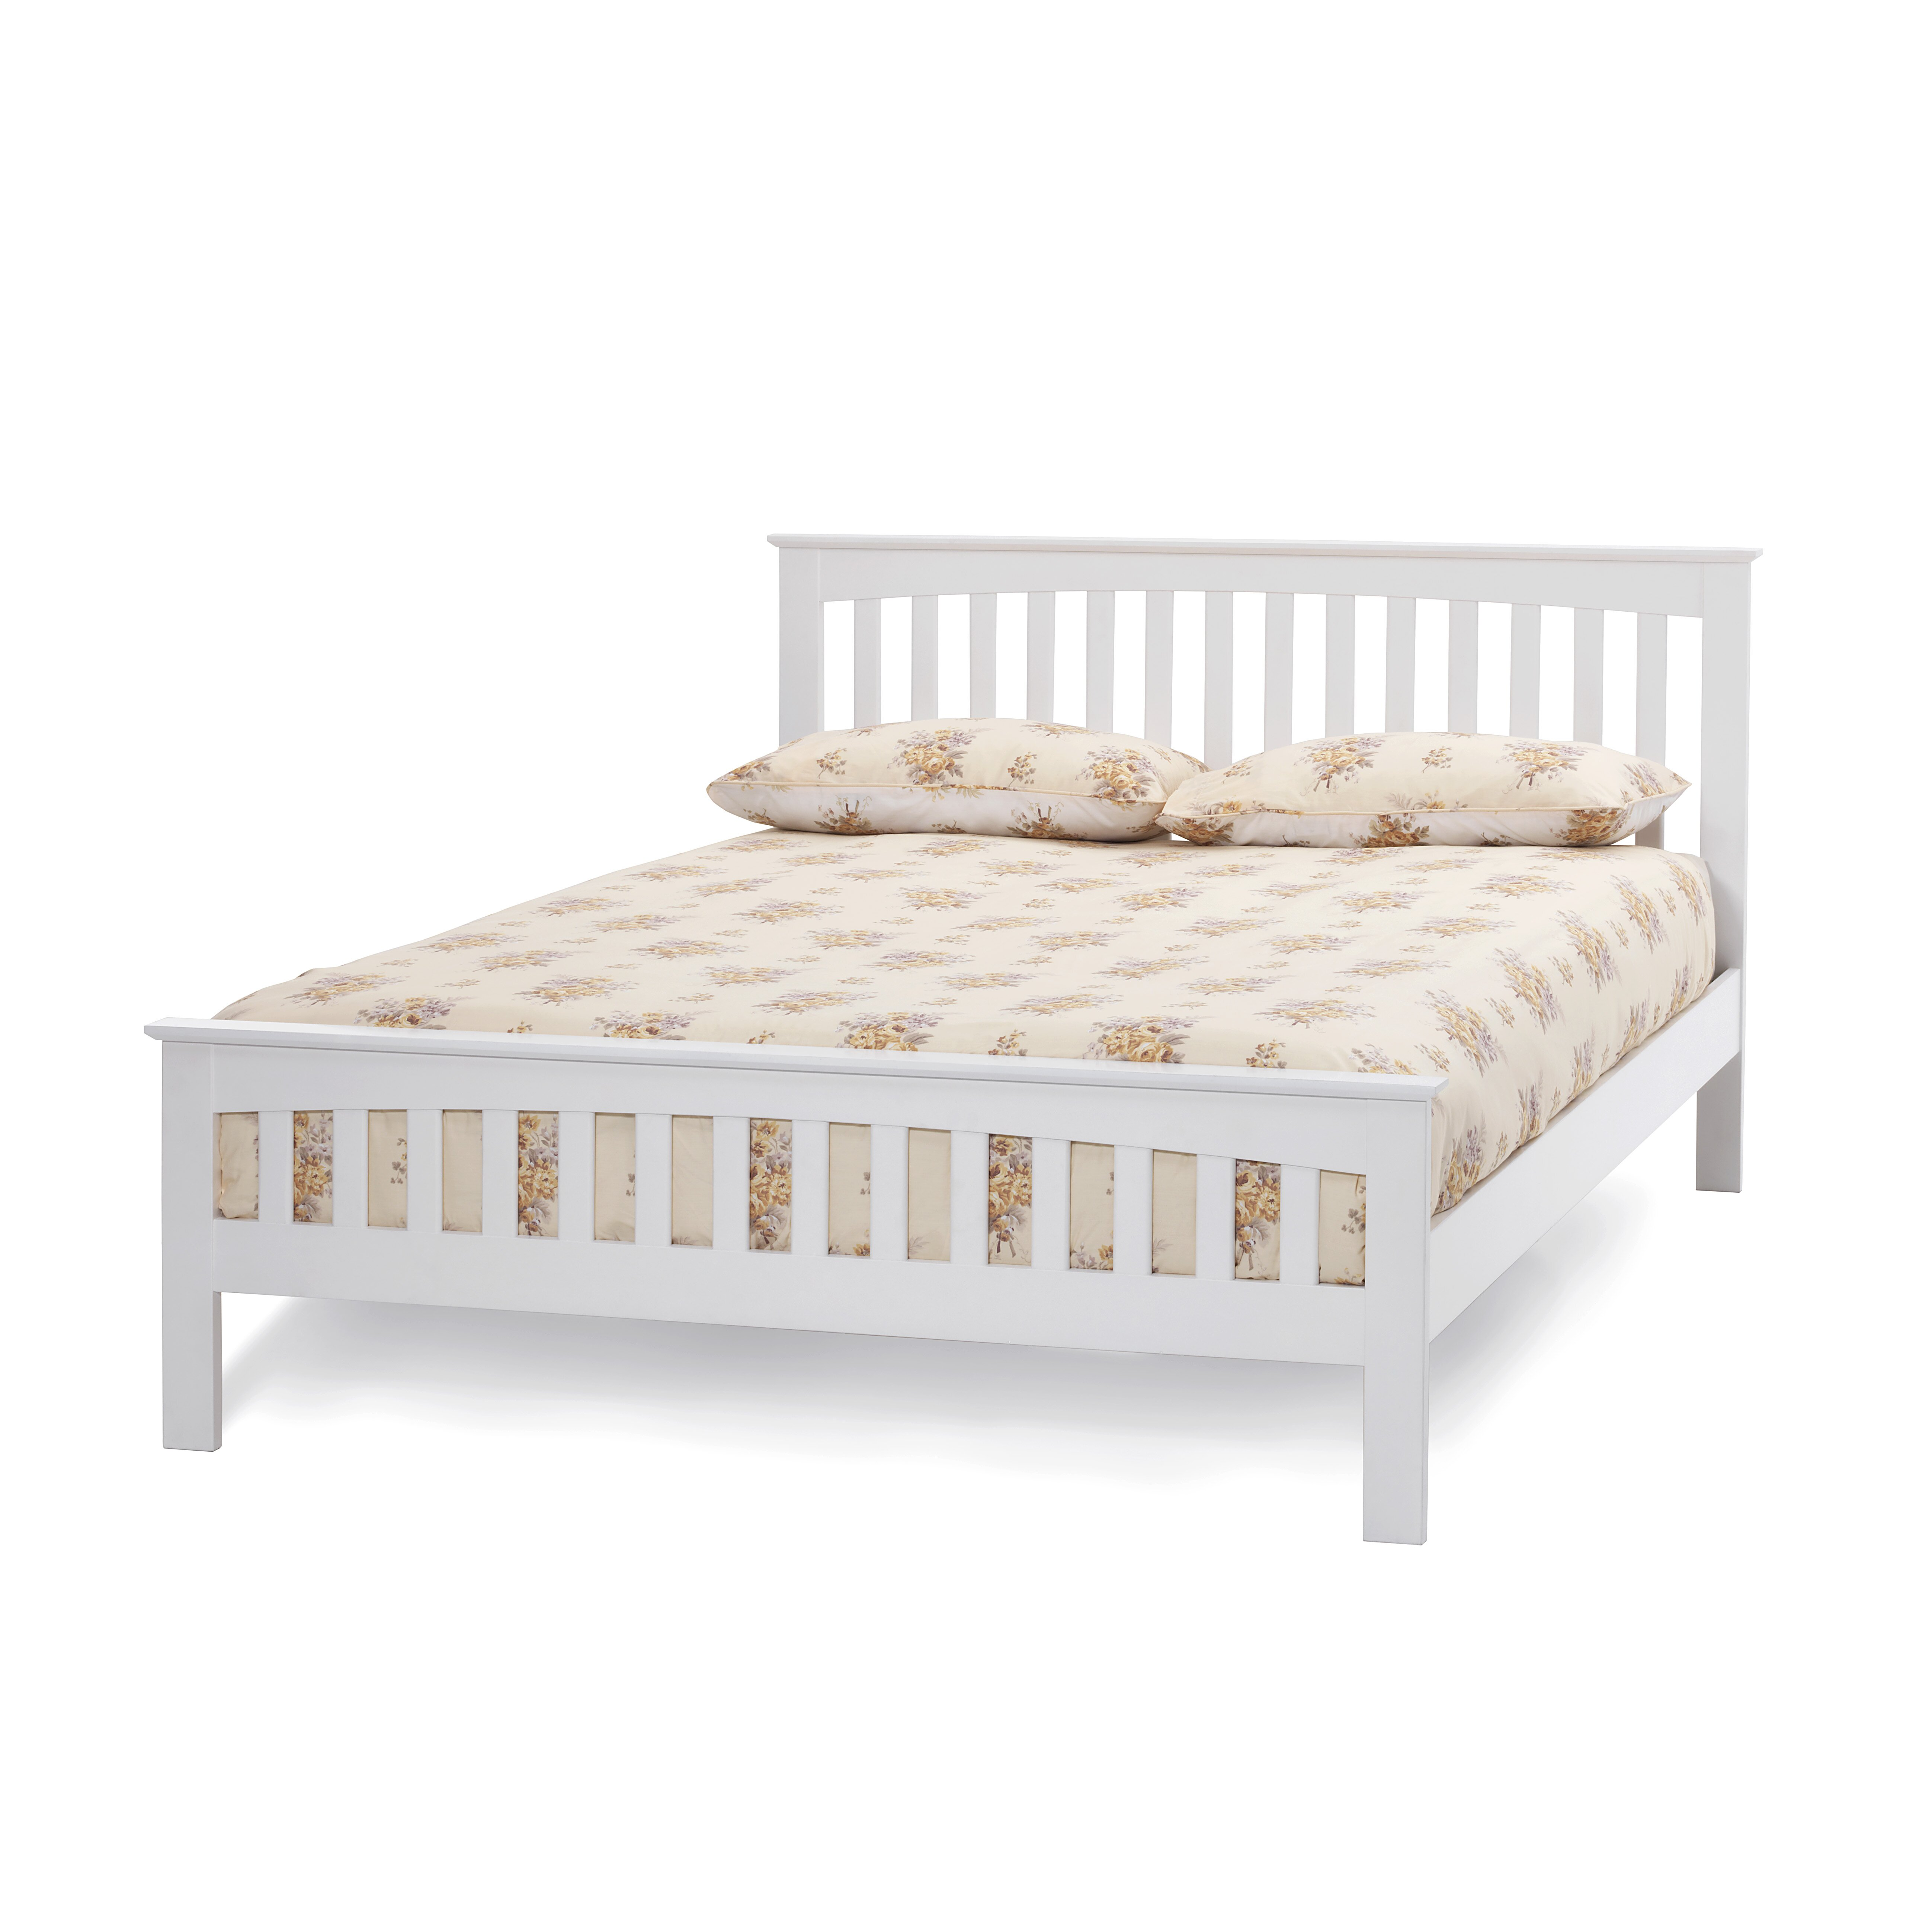 Home & Haus Ombersley Bed Frame & Reviews